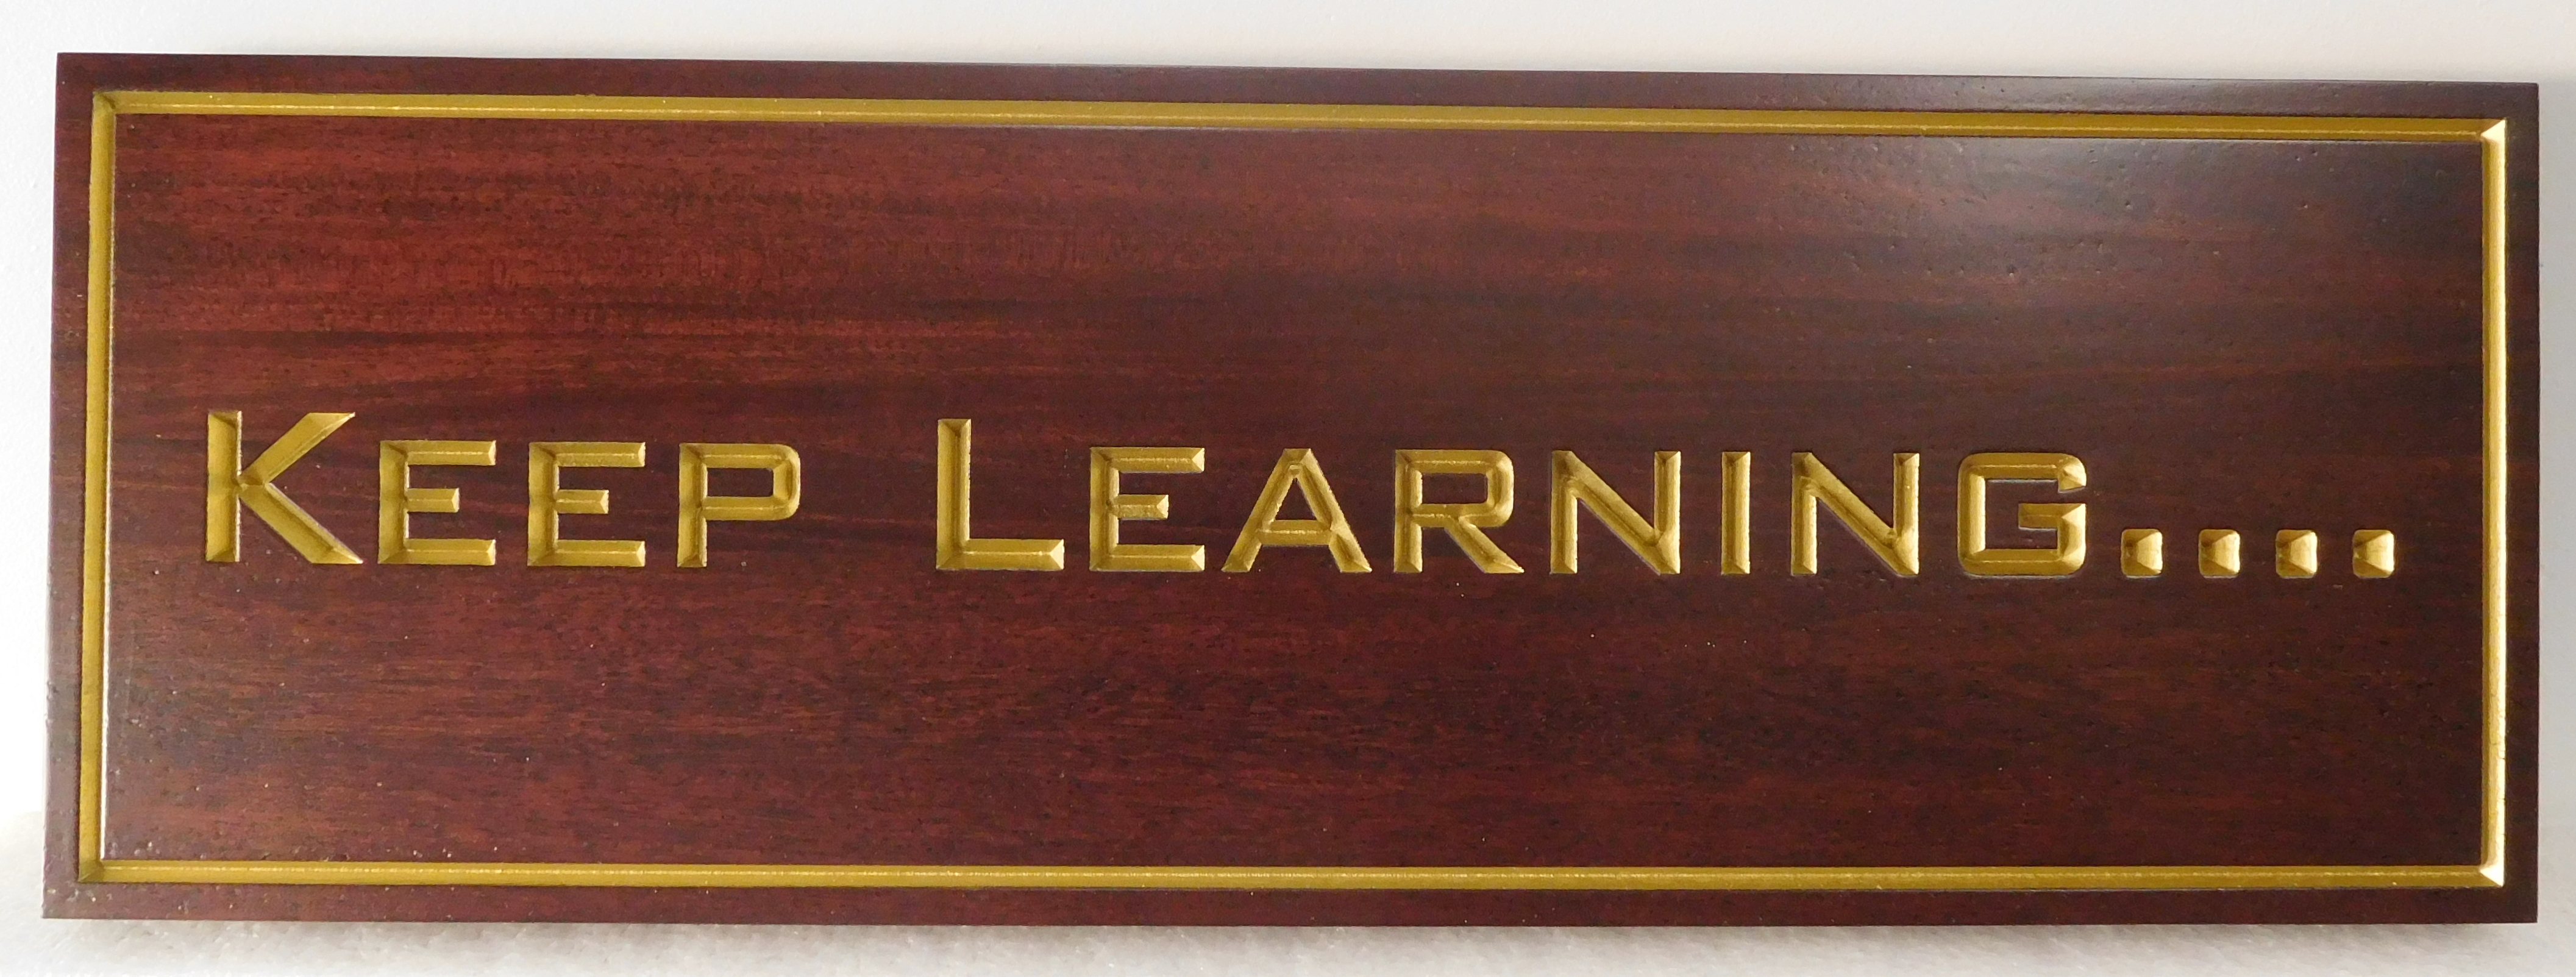 "TP-1480 - Engraved Wall Plaque with Quote ""Keep Learning"",  with Gold Metallic Paint on Mahogany"